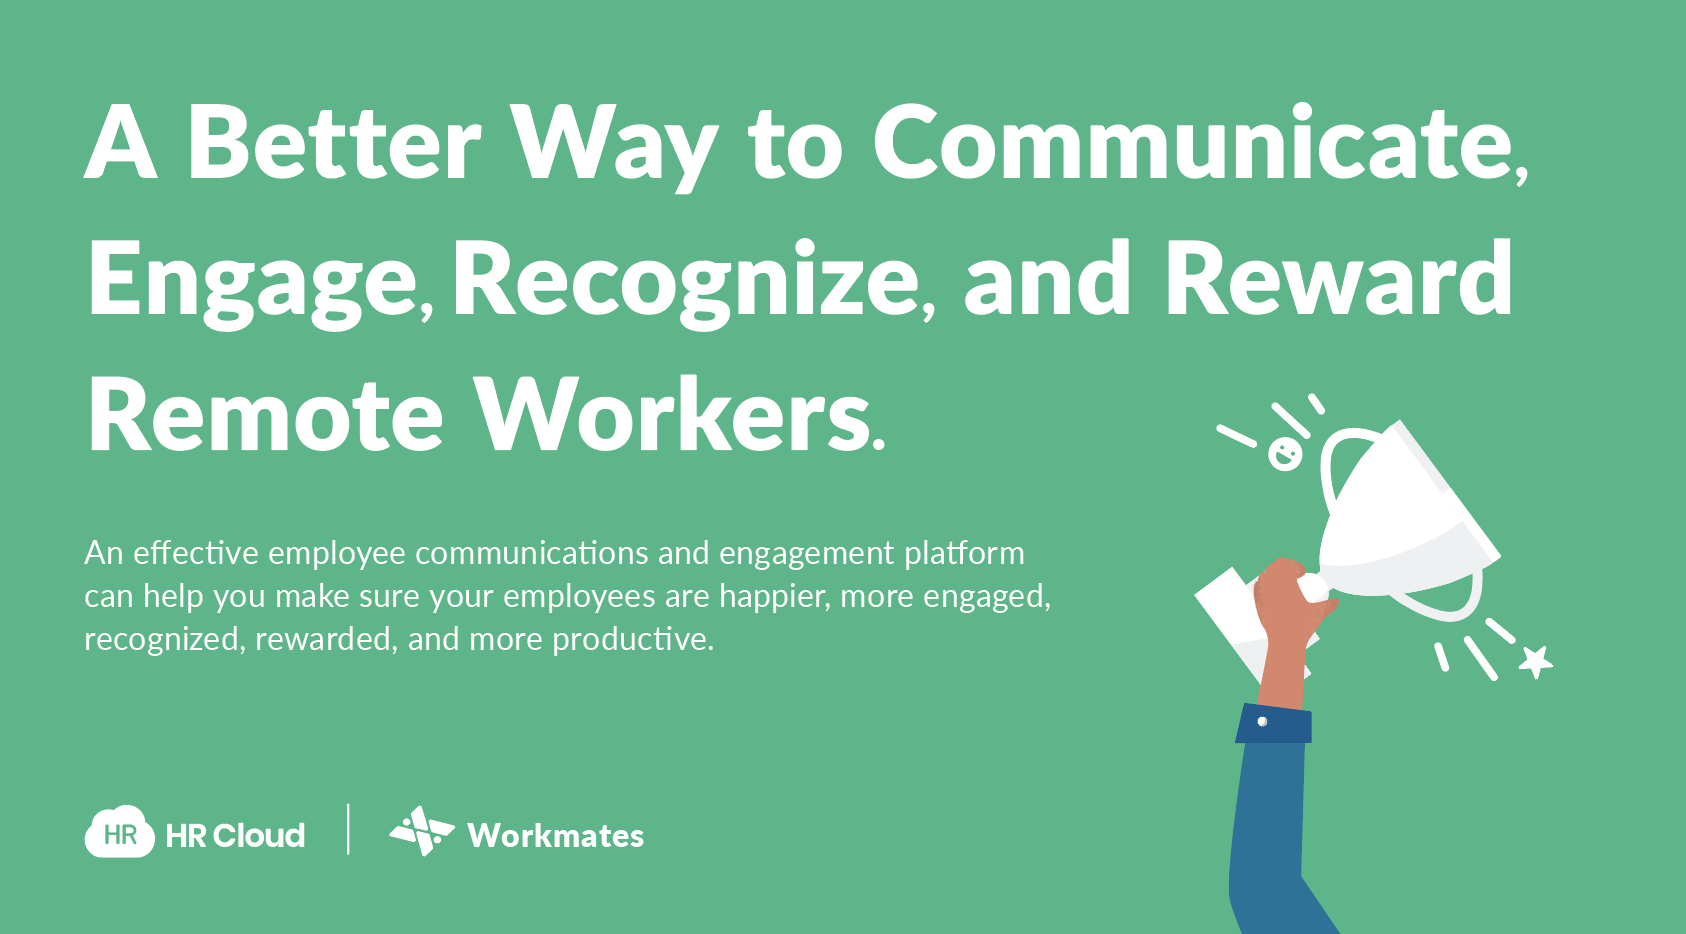 A Better Way to Communicate, Engage, Recognize, and Reward Remote Workers